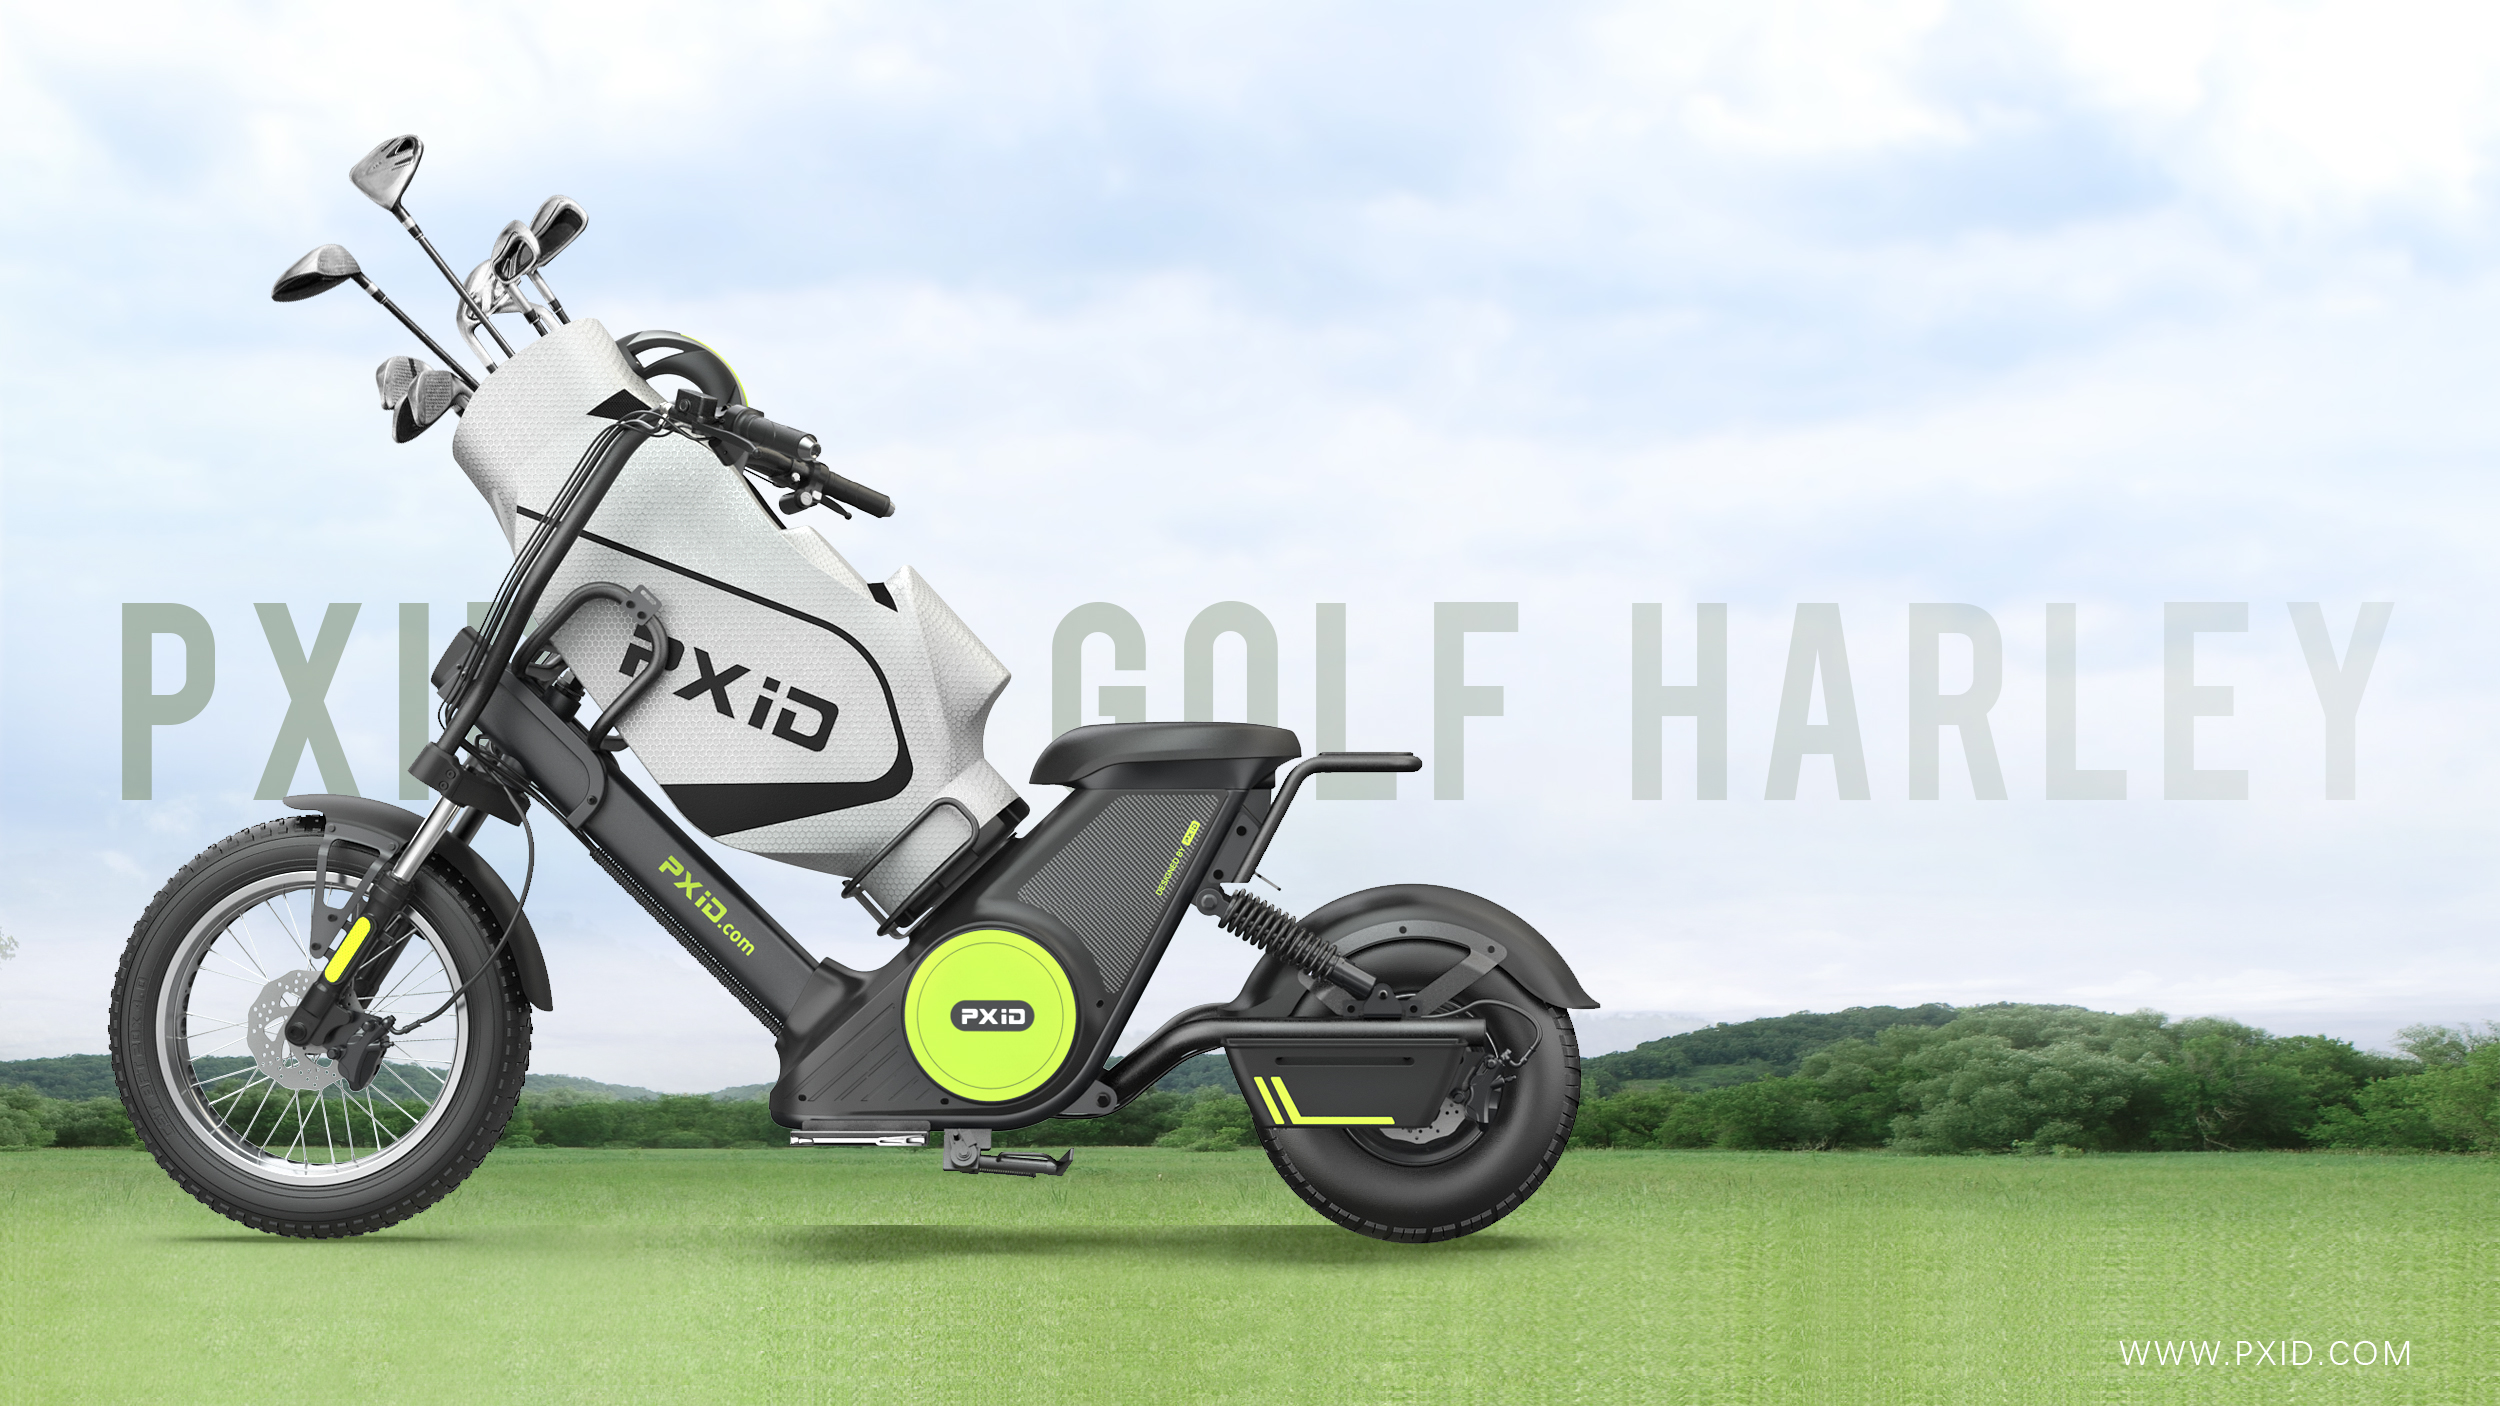 M6G Golf Electric Motorcycle With Large Golf Bag